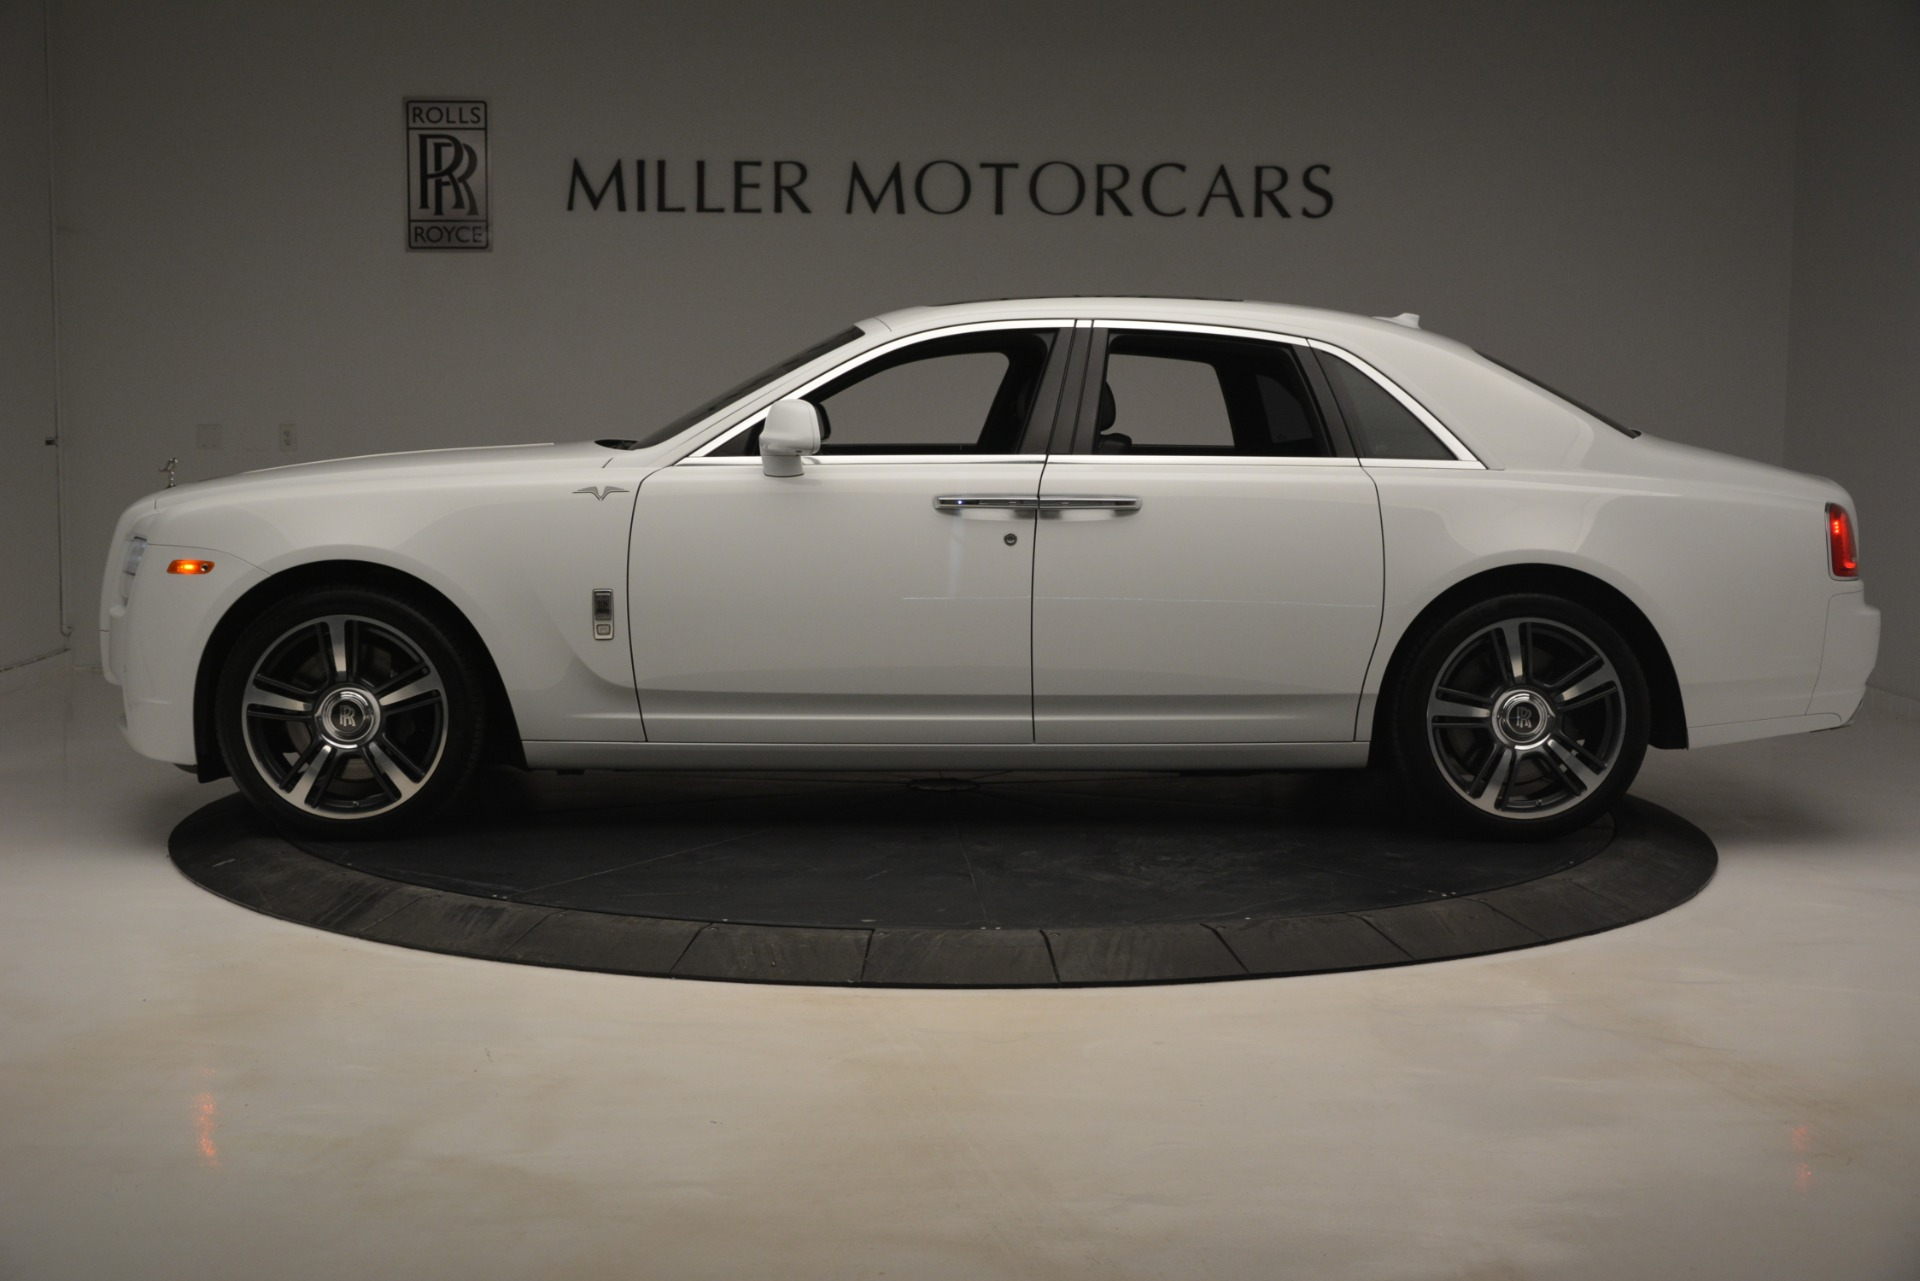 Used 2014 Rolls-Royce Ghost V-Spec For Sale In Greenwich, CT 2989_p4